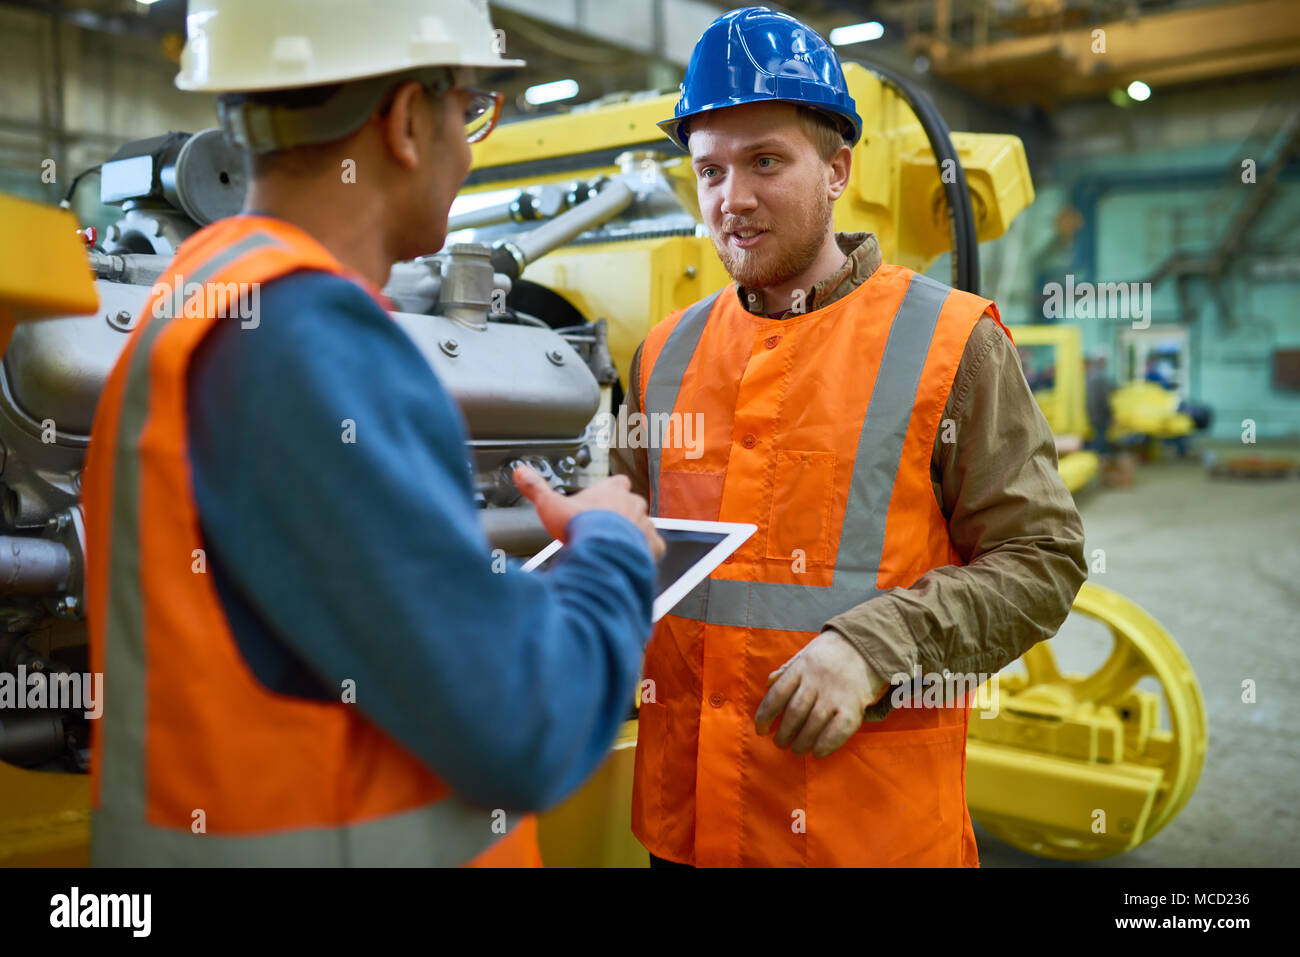 Solving Faced Problems with Colleague - Stock Image